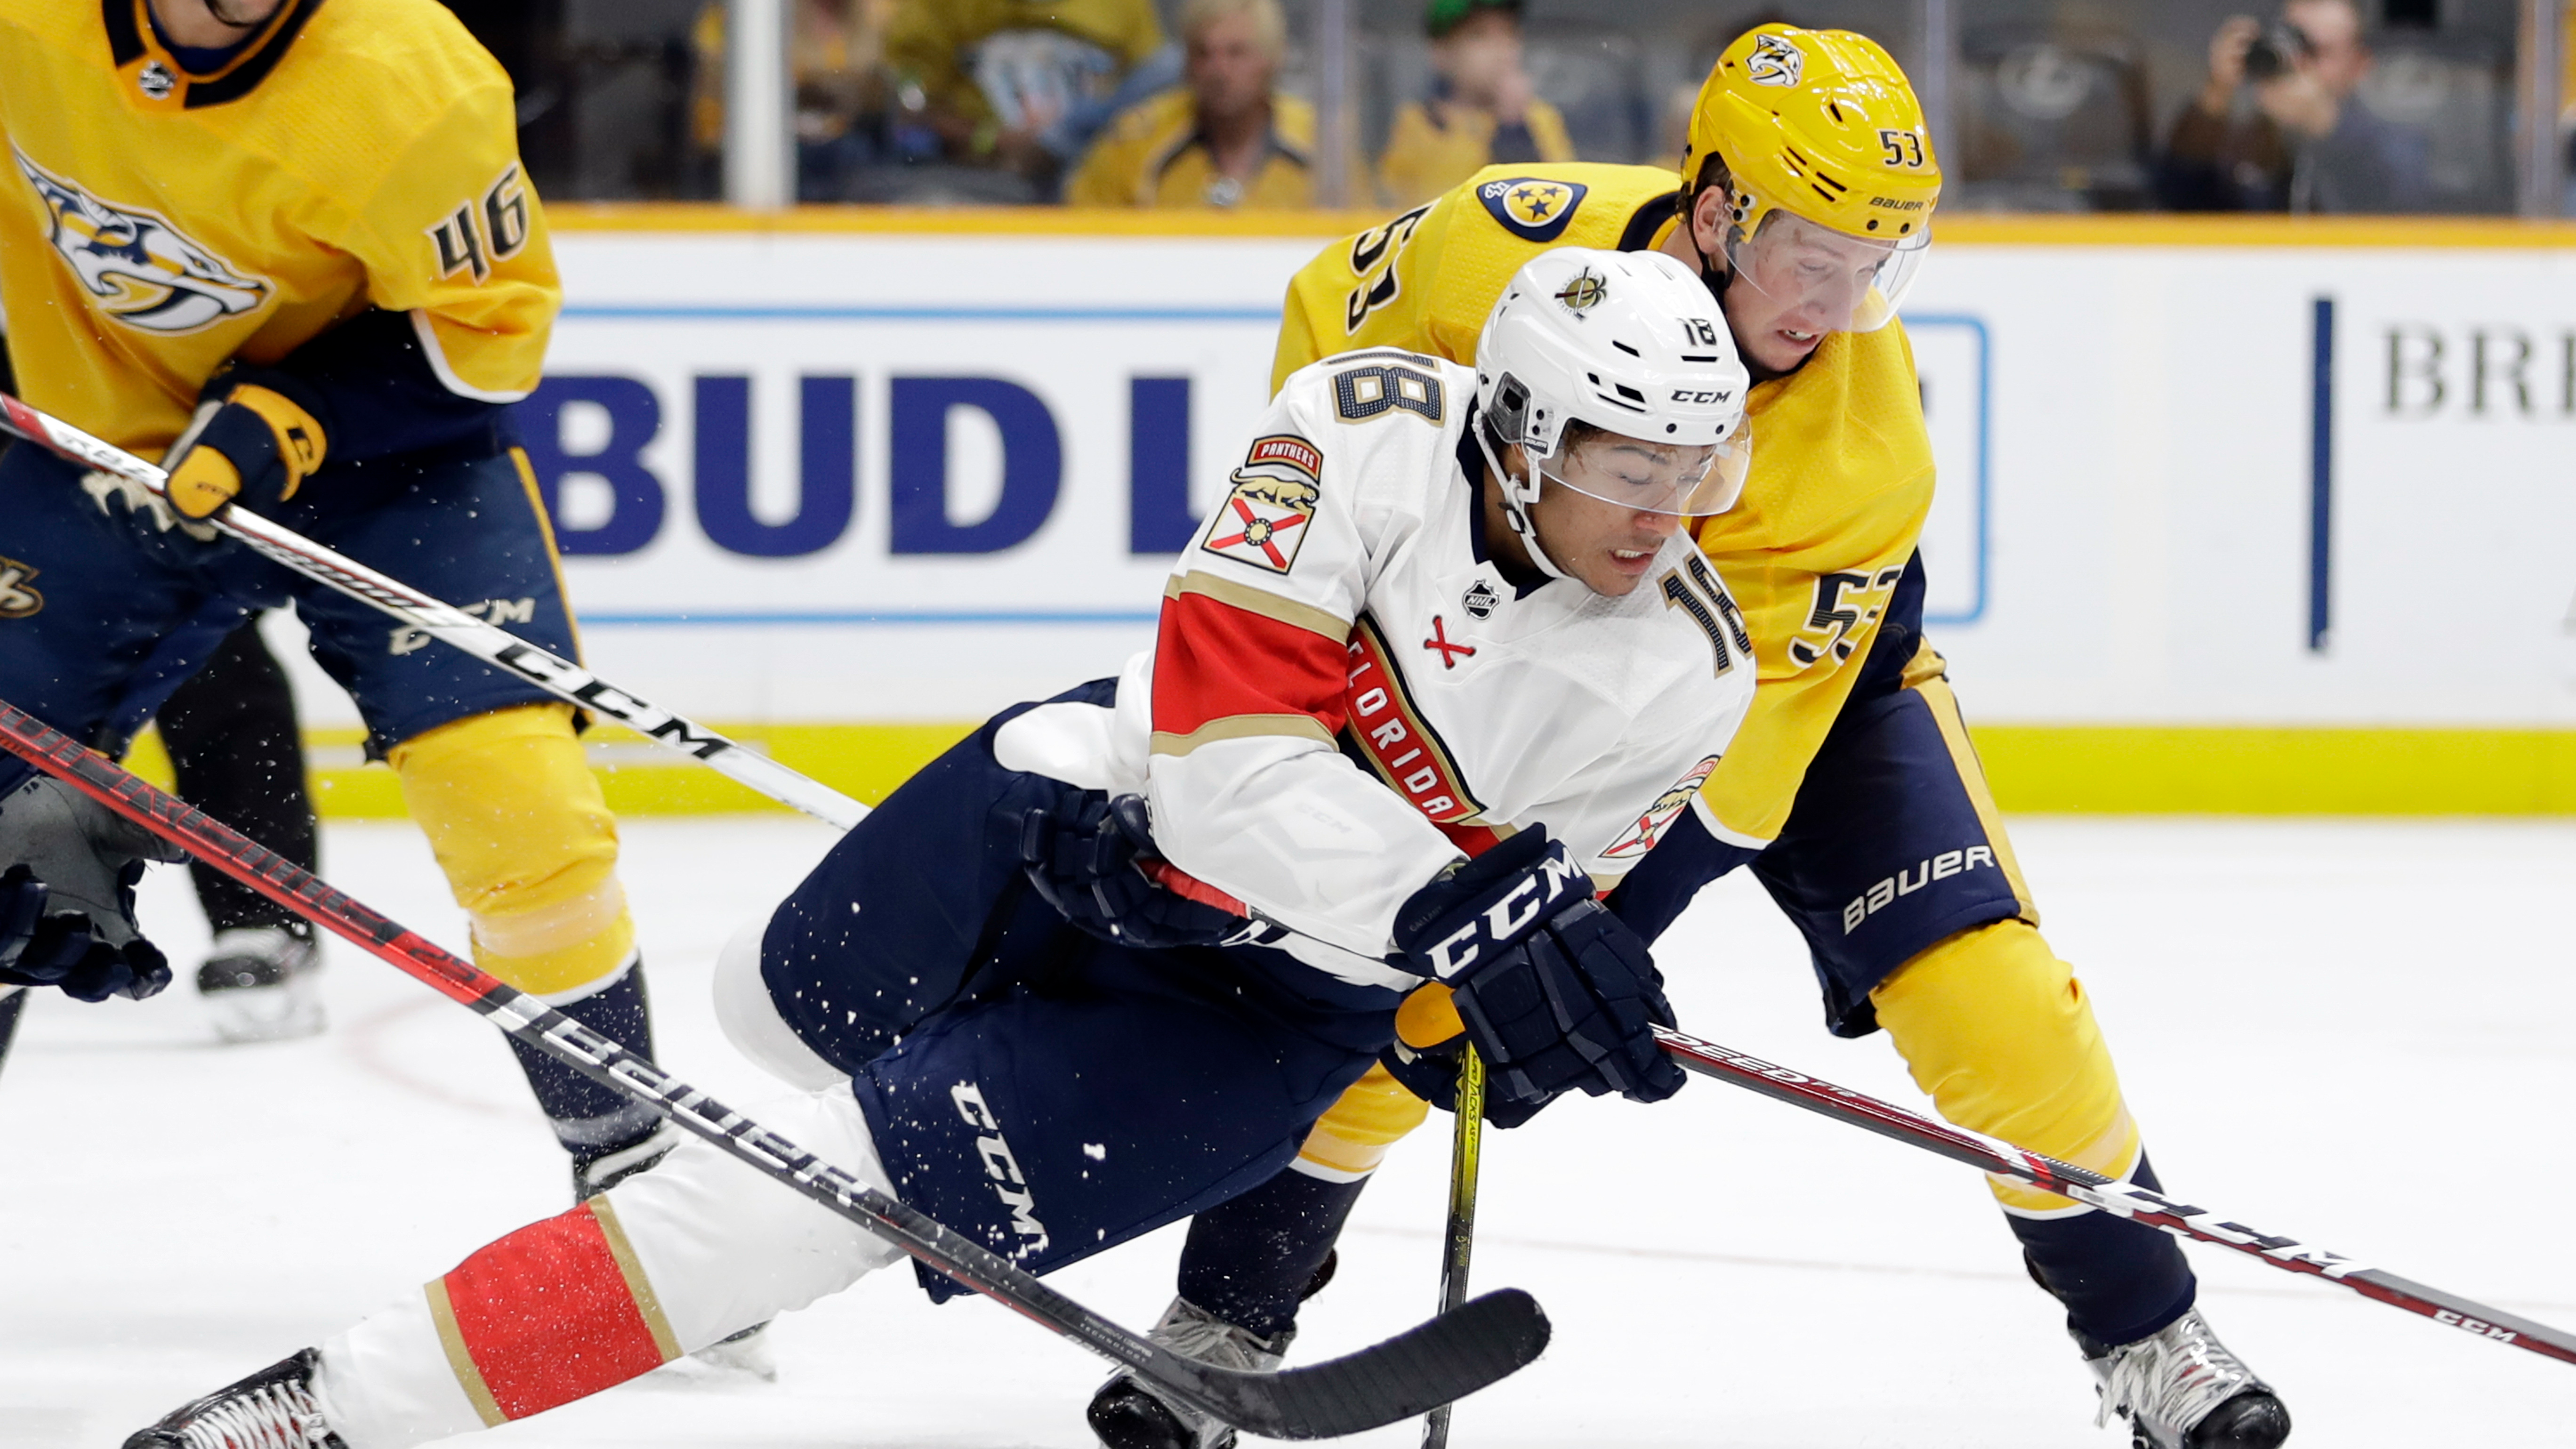 NHL Preseason: Brett Connolly starts strong, but Panthers drop both in doubleheader with Predators